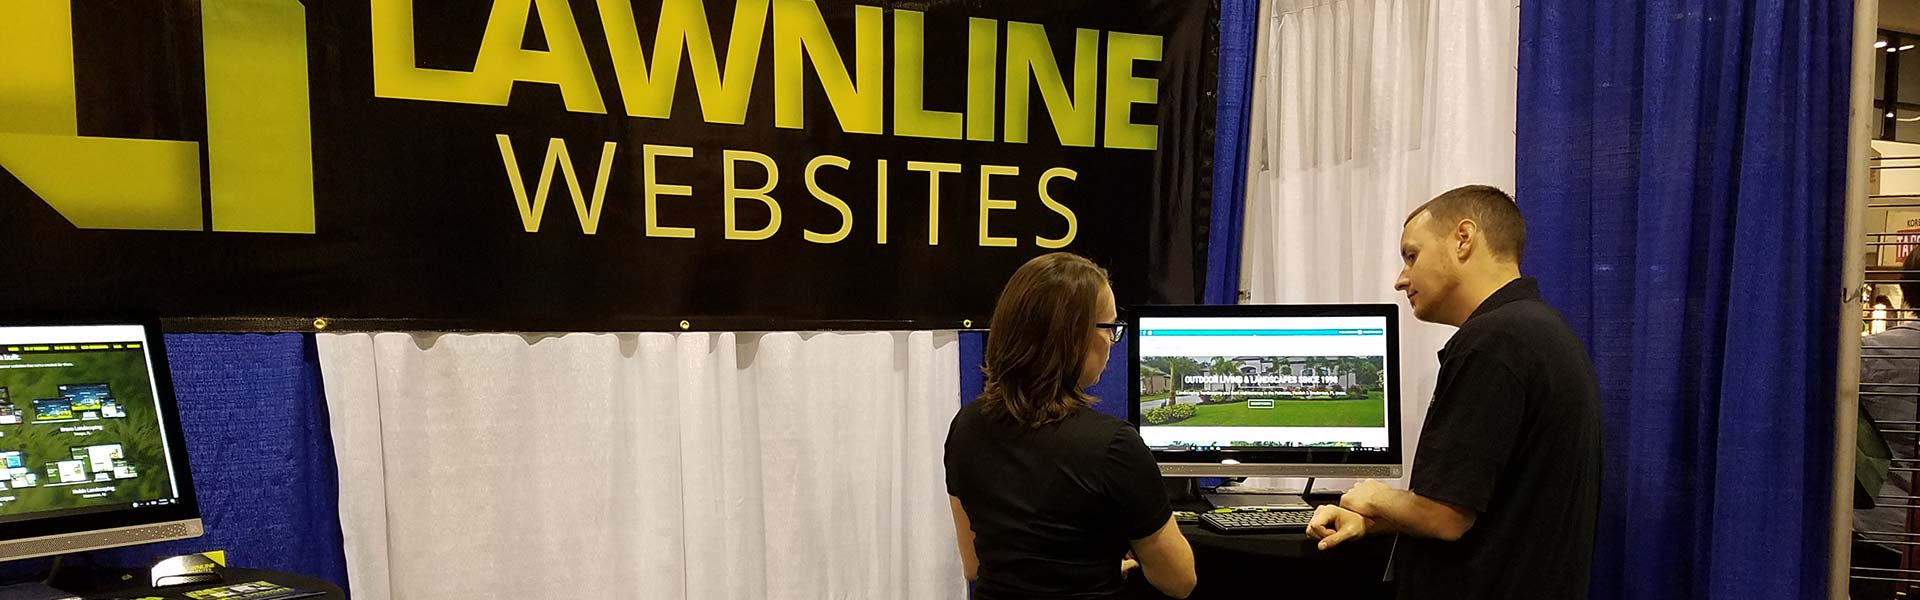 Lawnline Websites booth at FNGLA Landscape Show in Orlando